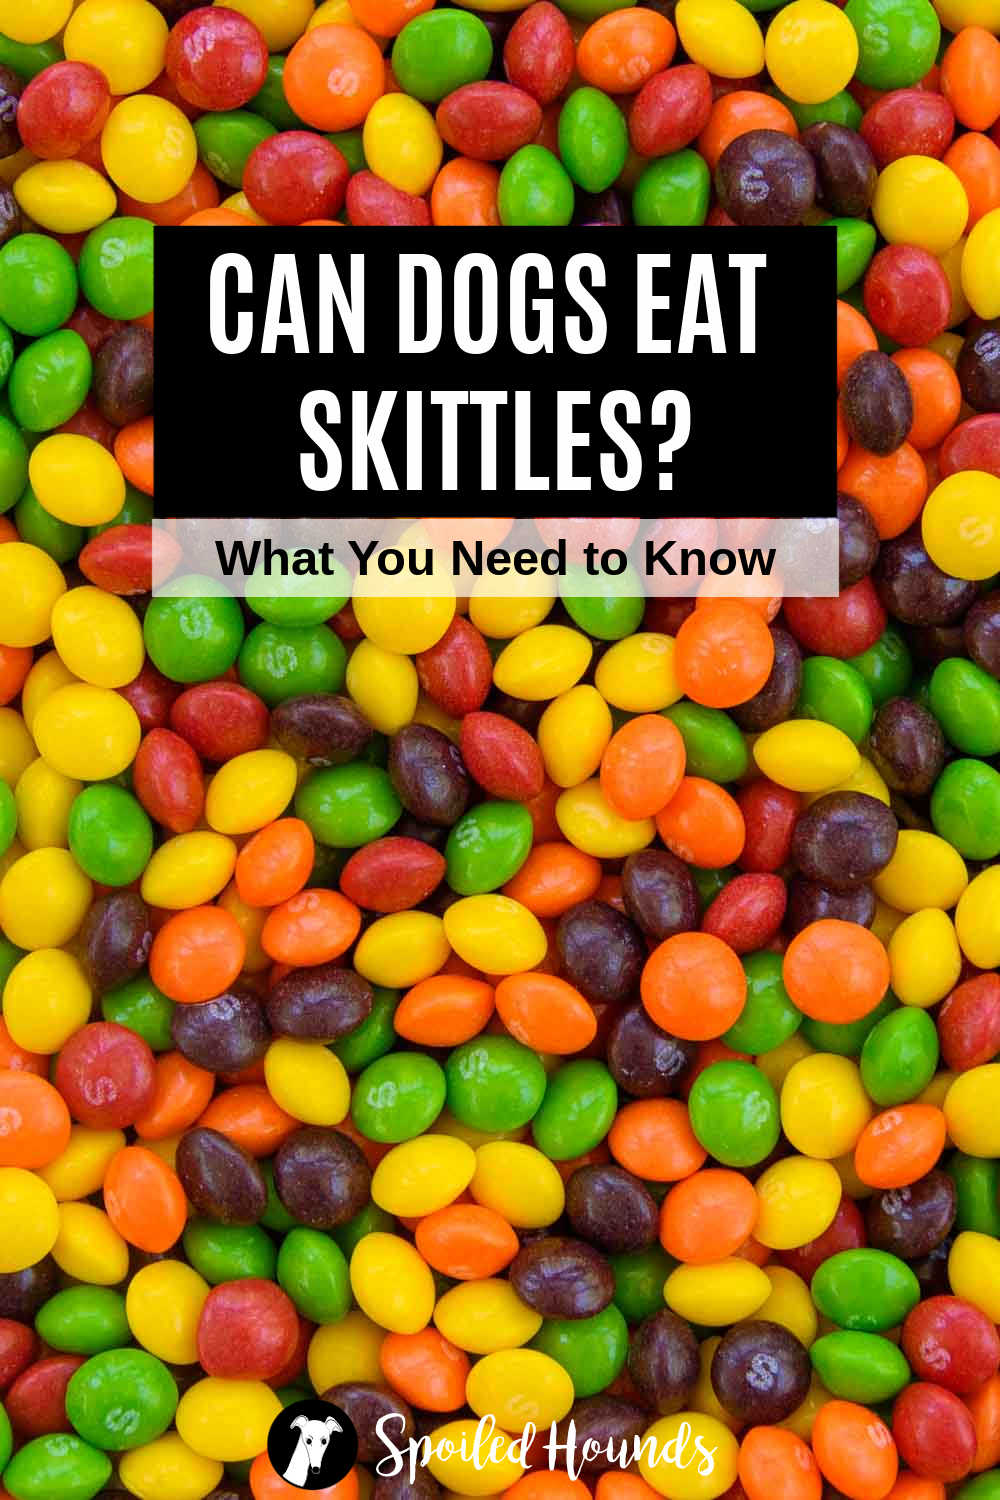 a bunch of Skittles candy